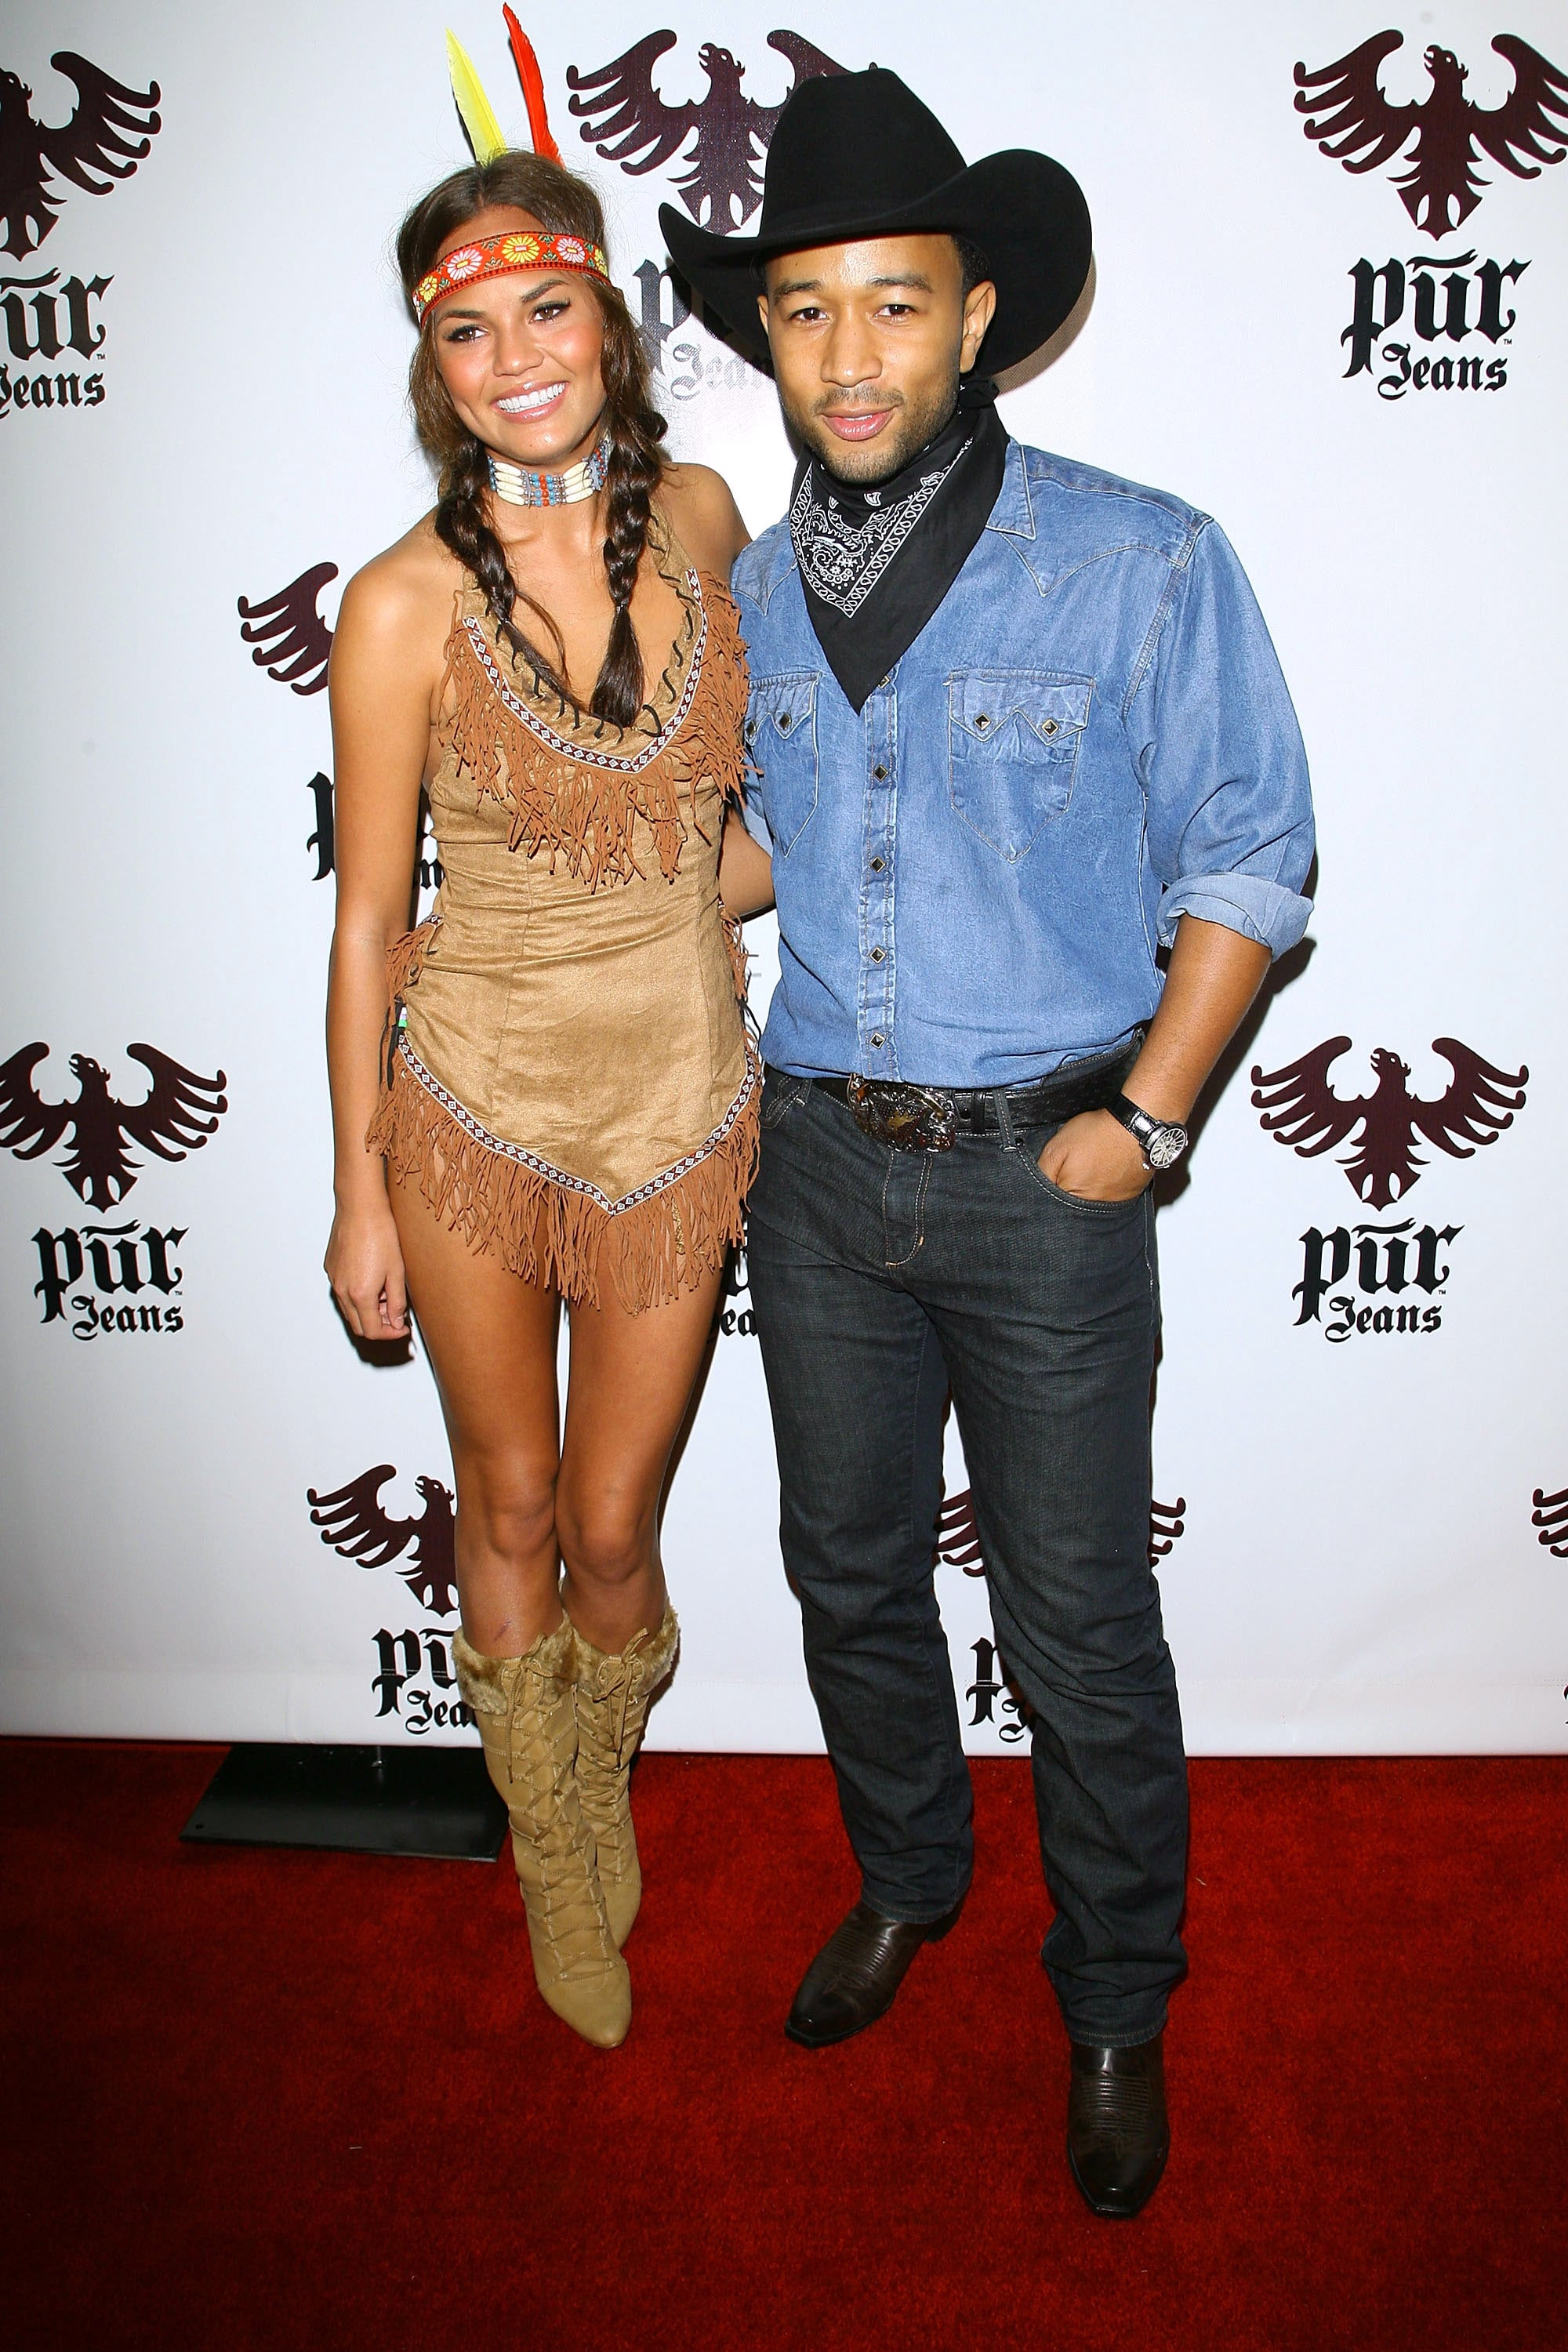 Pocohontas Halloween Costumes 2020 Chrissy Teigen played the part of Pocahontas while attending a